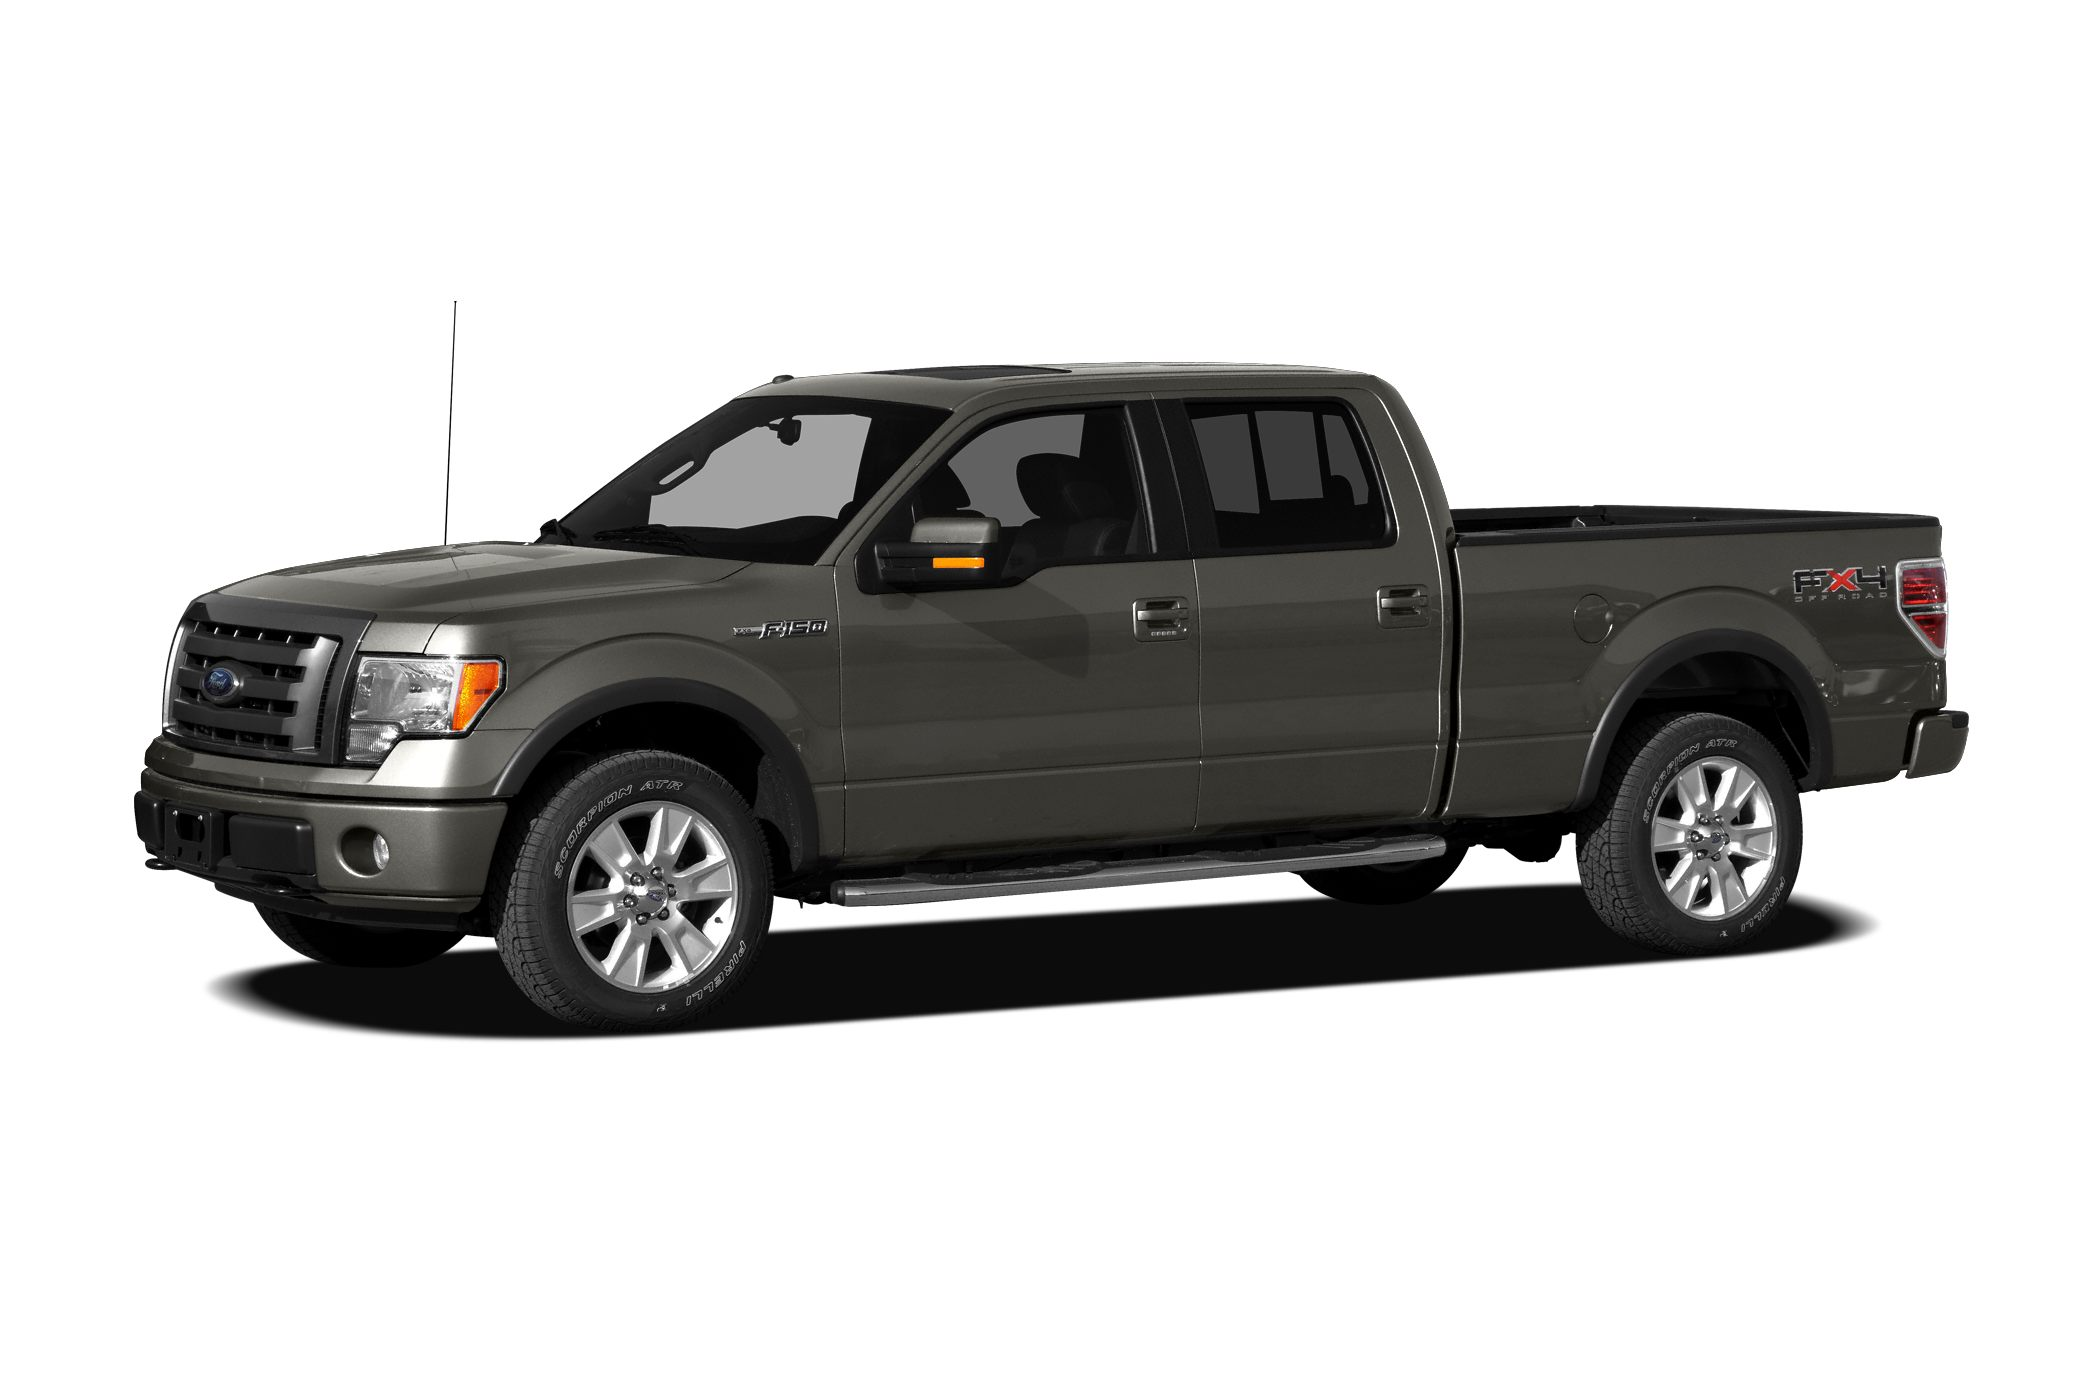 2010 Ford F-150 XLT Runs mint Gassss saverrrr 21 MPG Hwy This credible 2010 Ford F-150 XLT se